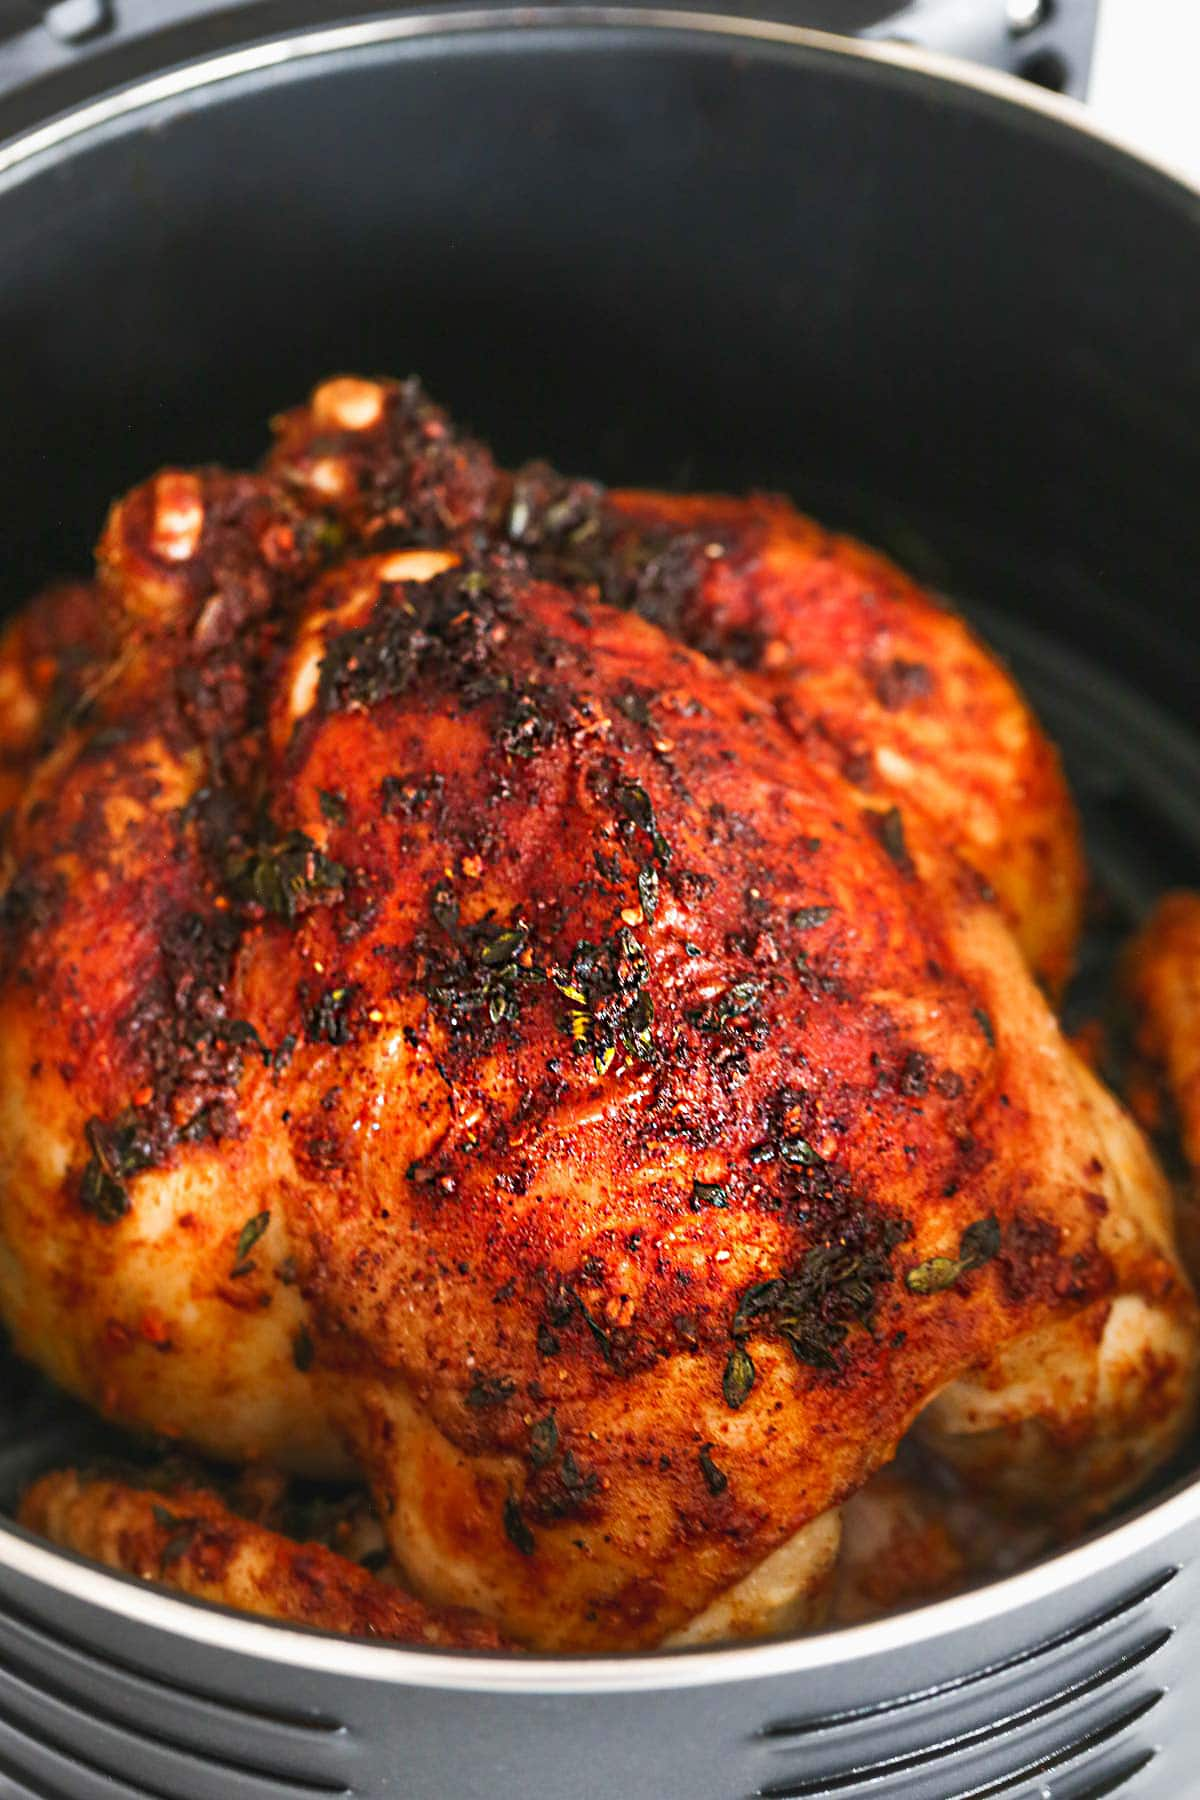 A close up shot of the air fryer rotisserie style chicken in an air fryer